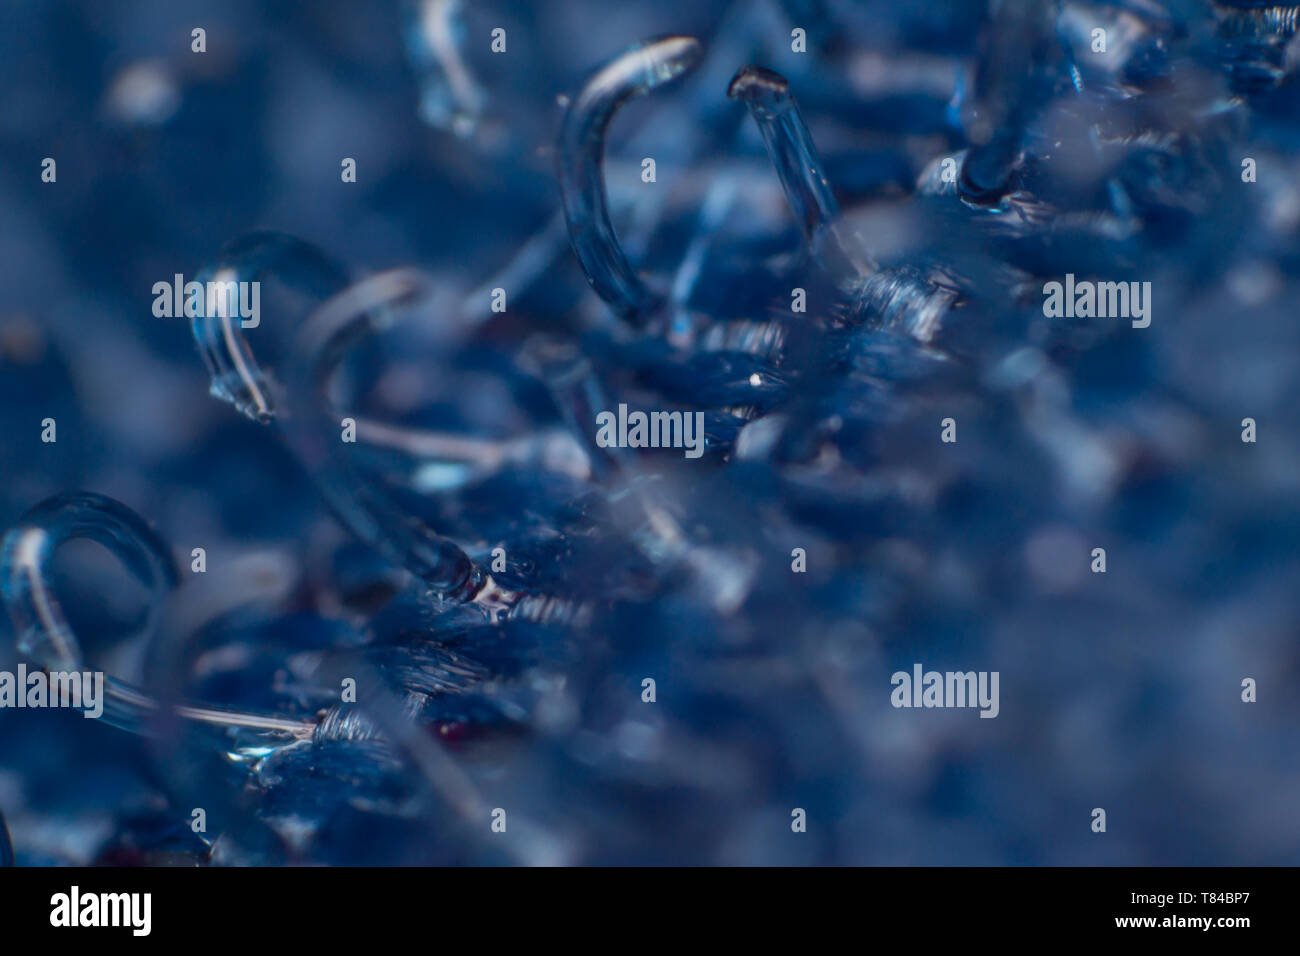 extreme macro of a blue velcro texture, abstract background - Stock Image